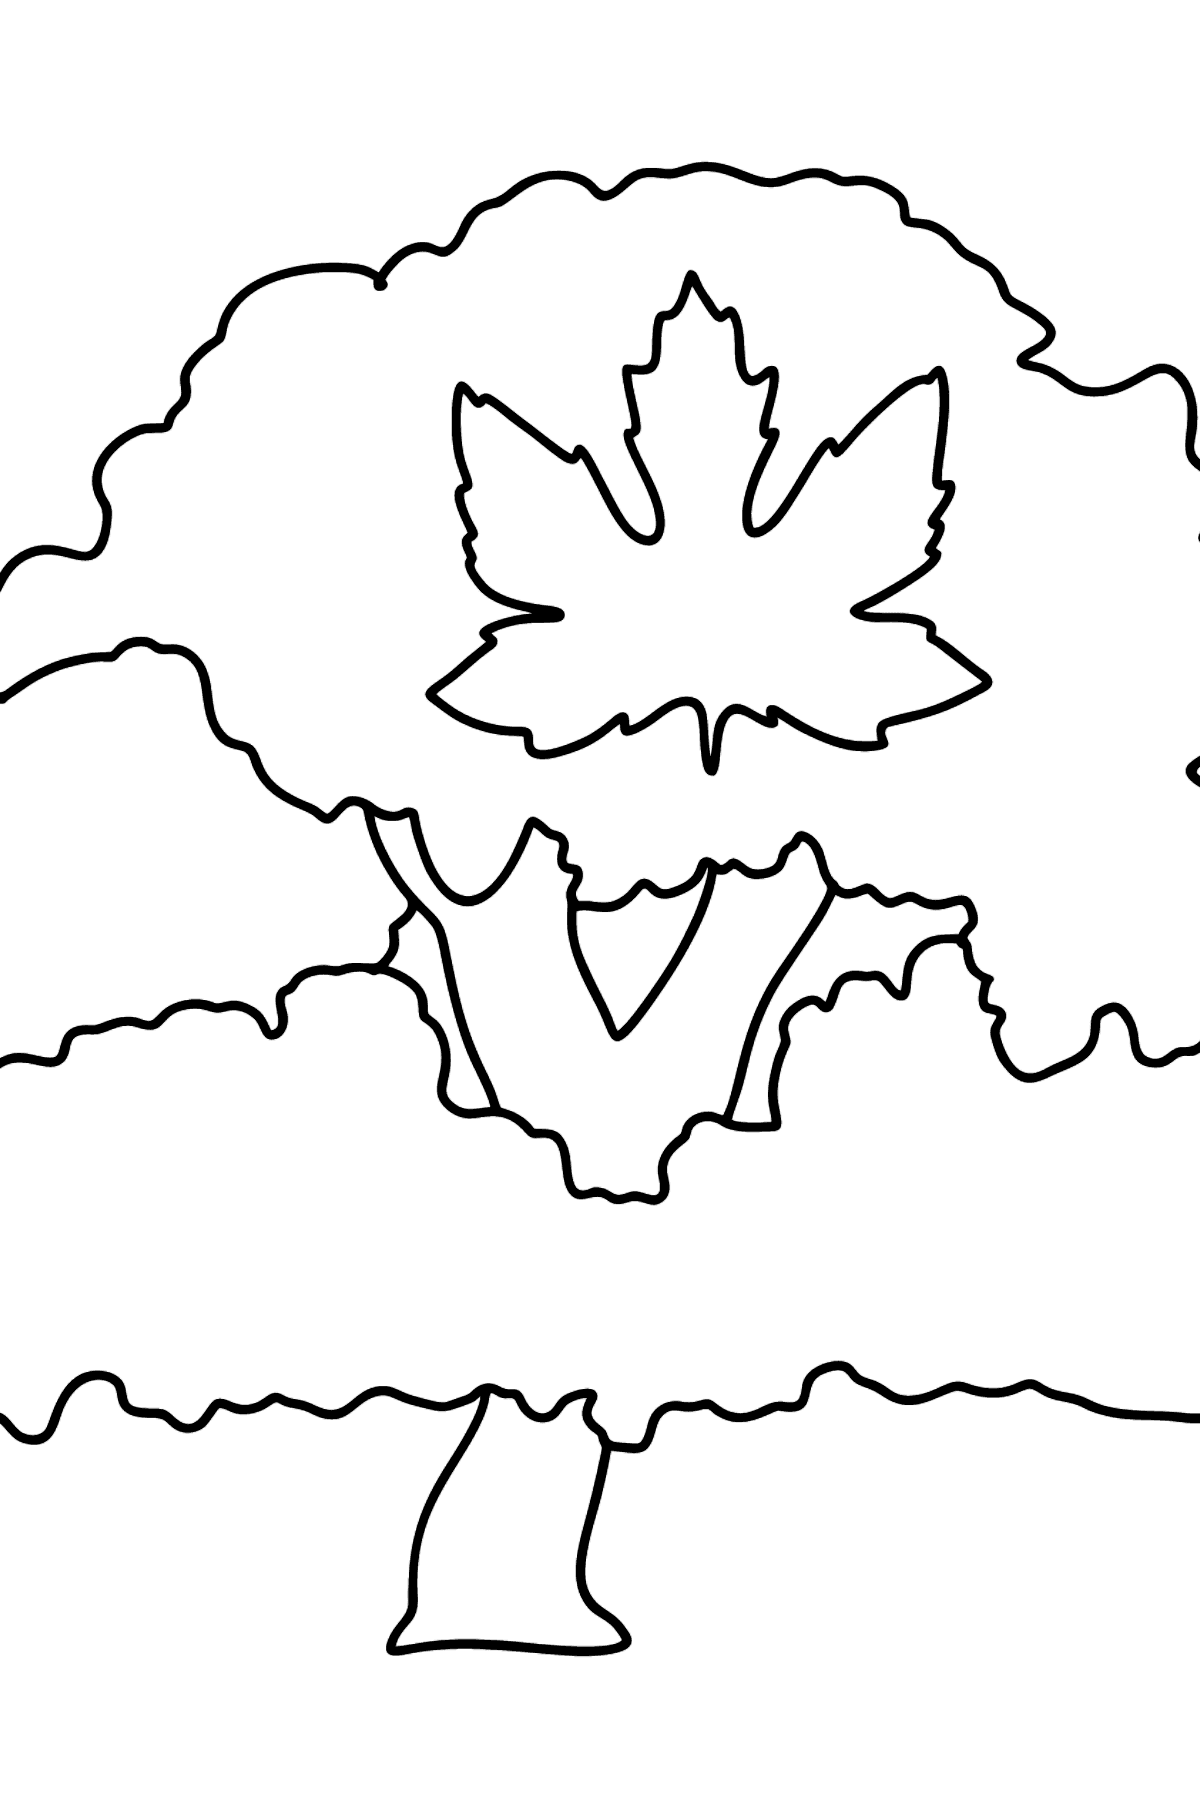 Red Maple coloring page - Coloring Pages for Kids